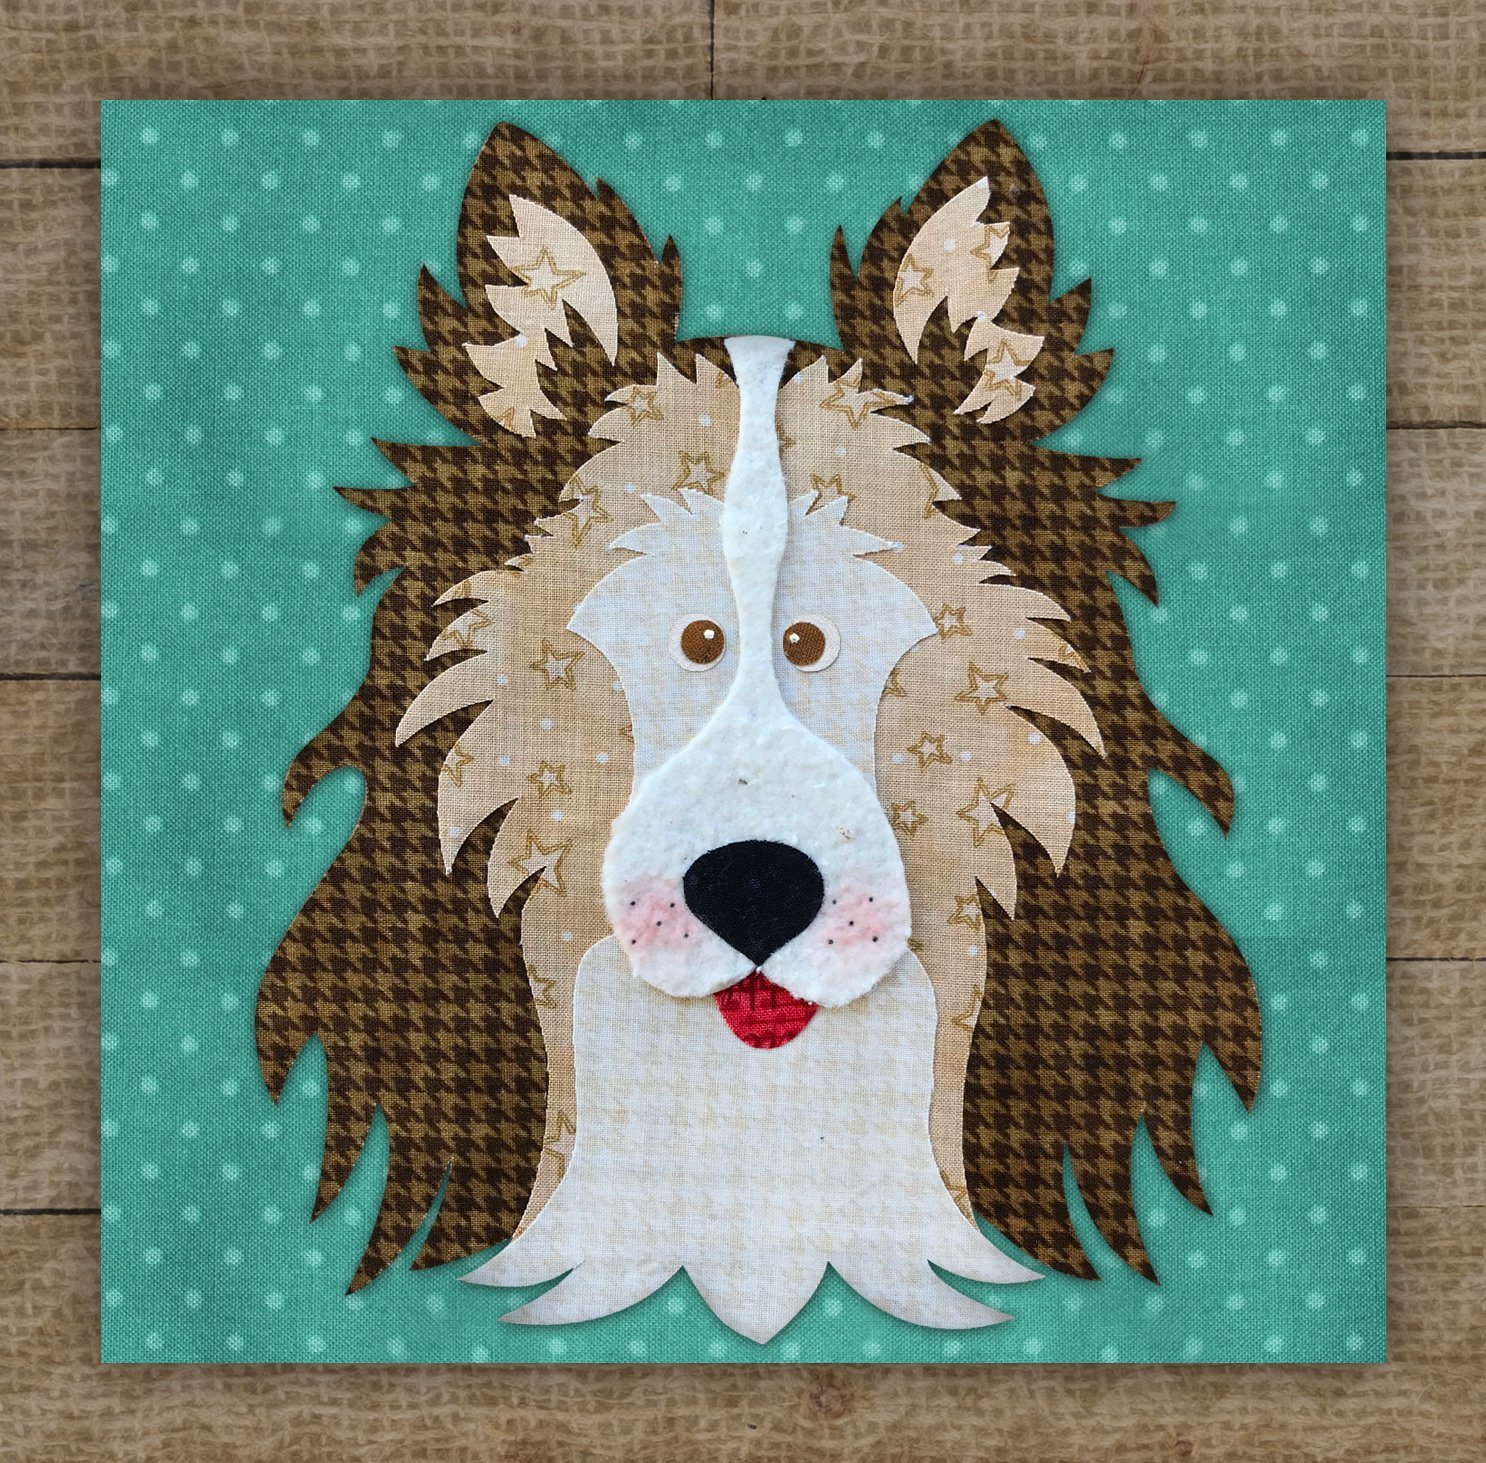 Collie/Sheltie - COMING SOON